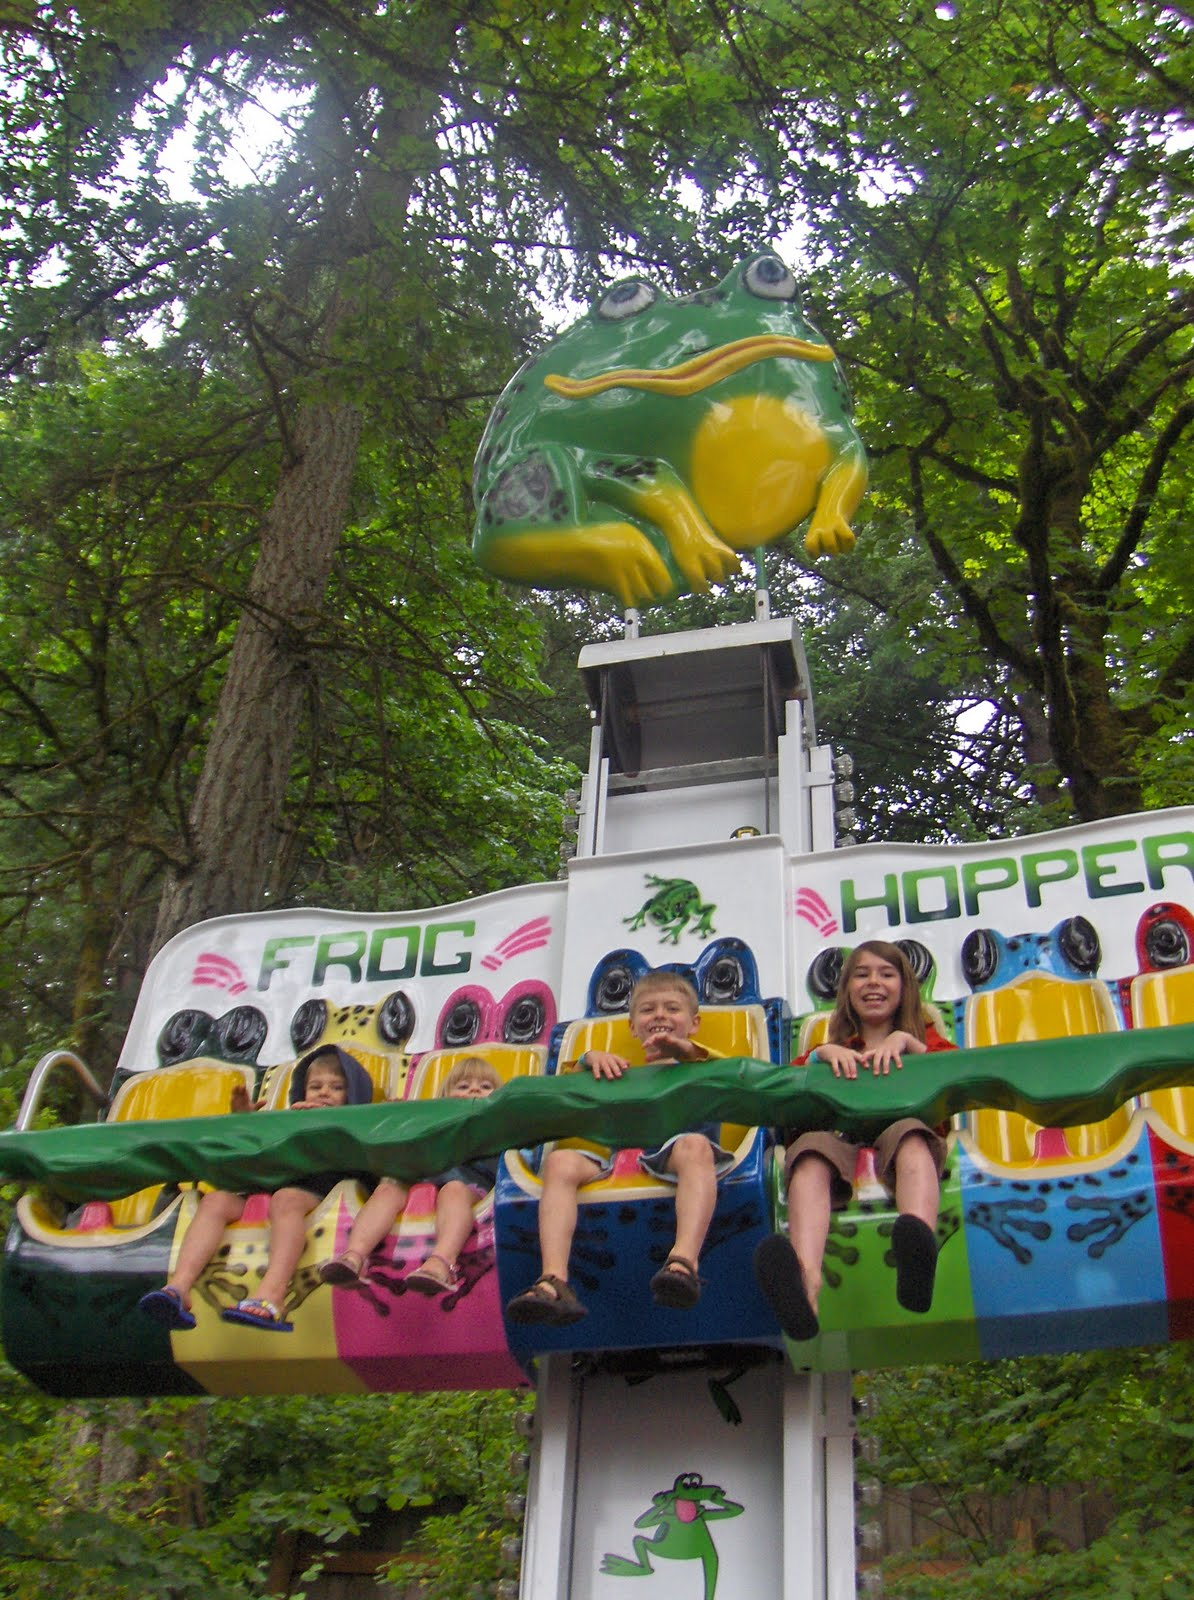 This Is Us On The Frog Hopper In Enchanted Forest Oregon It A Fun Place